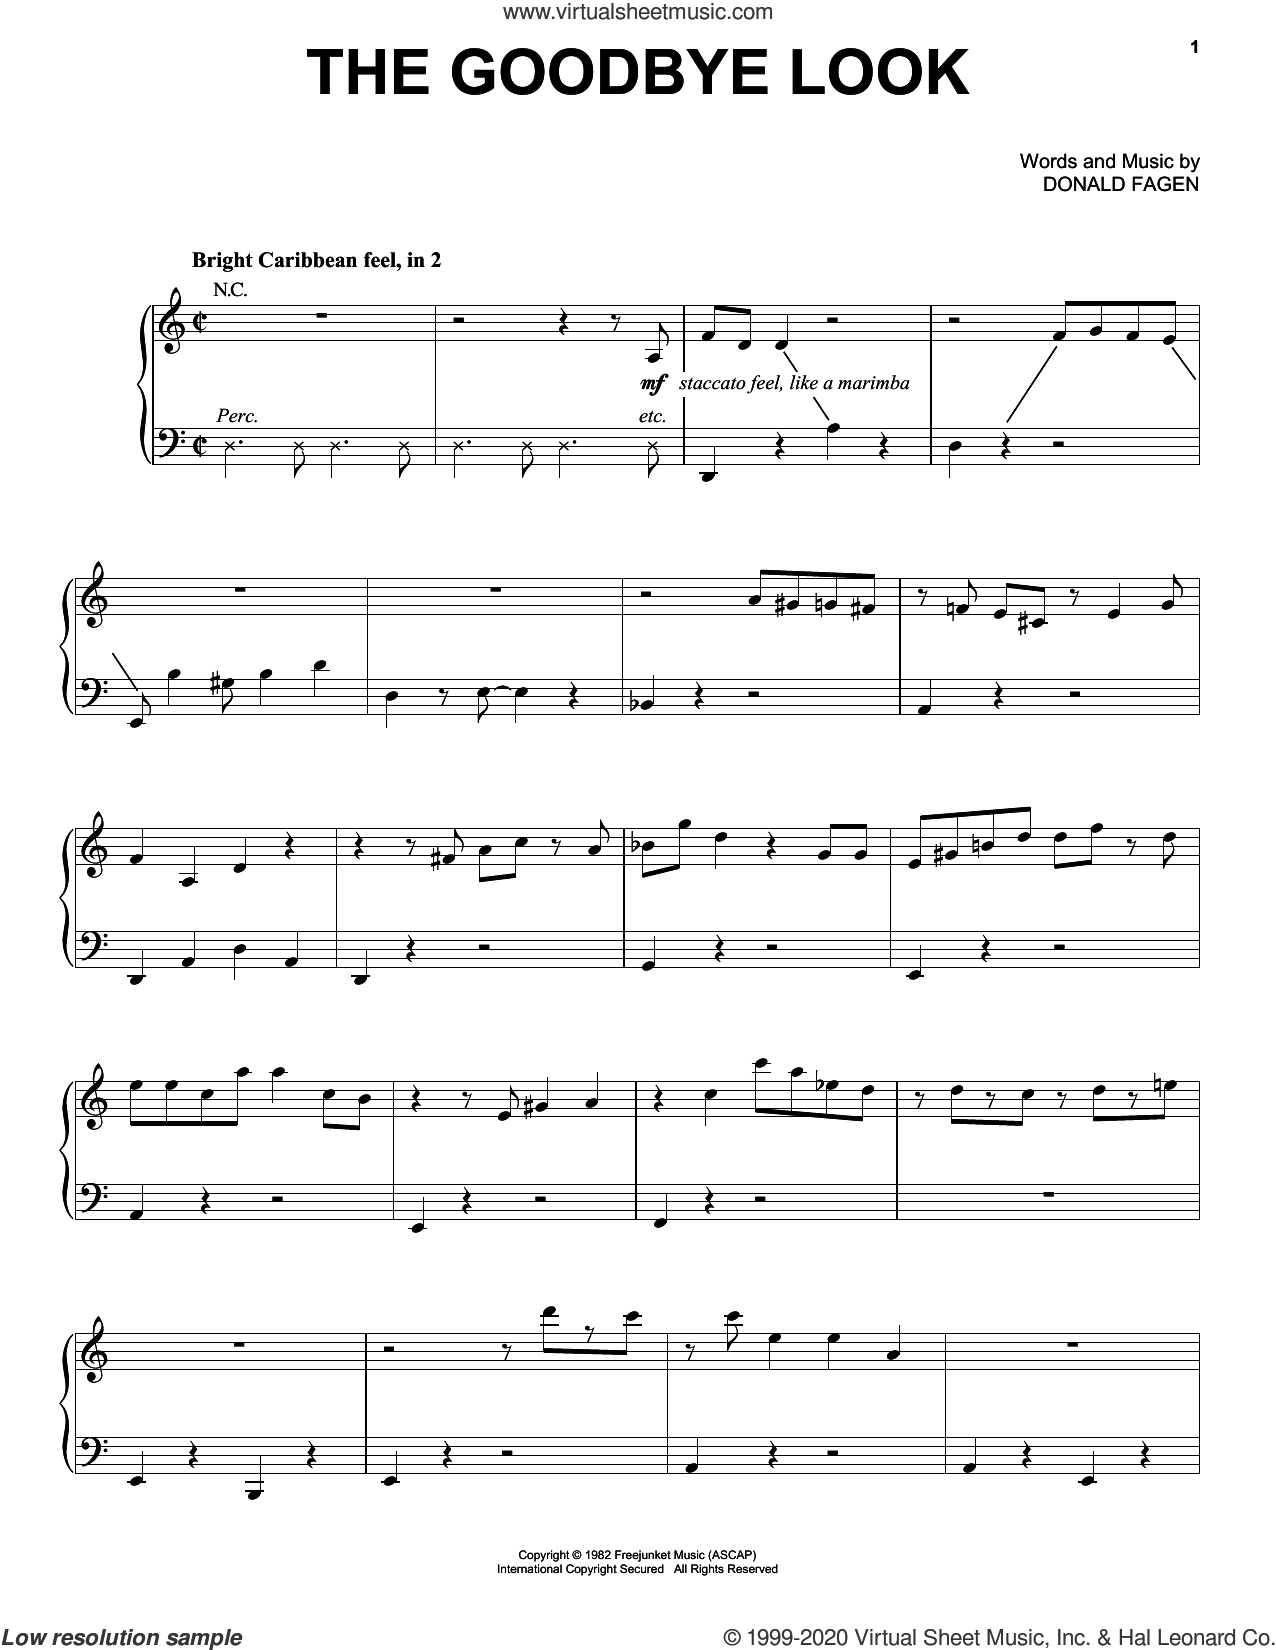 The Goodbye Look sheet music for voice, piano or guitar by Donald Fagen, intermediate skill level